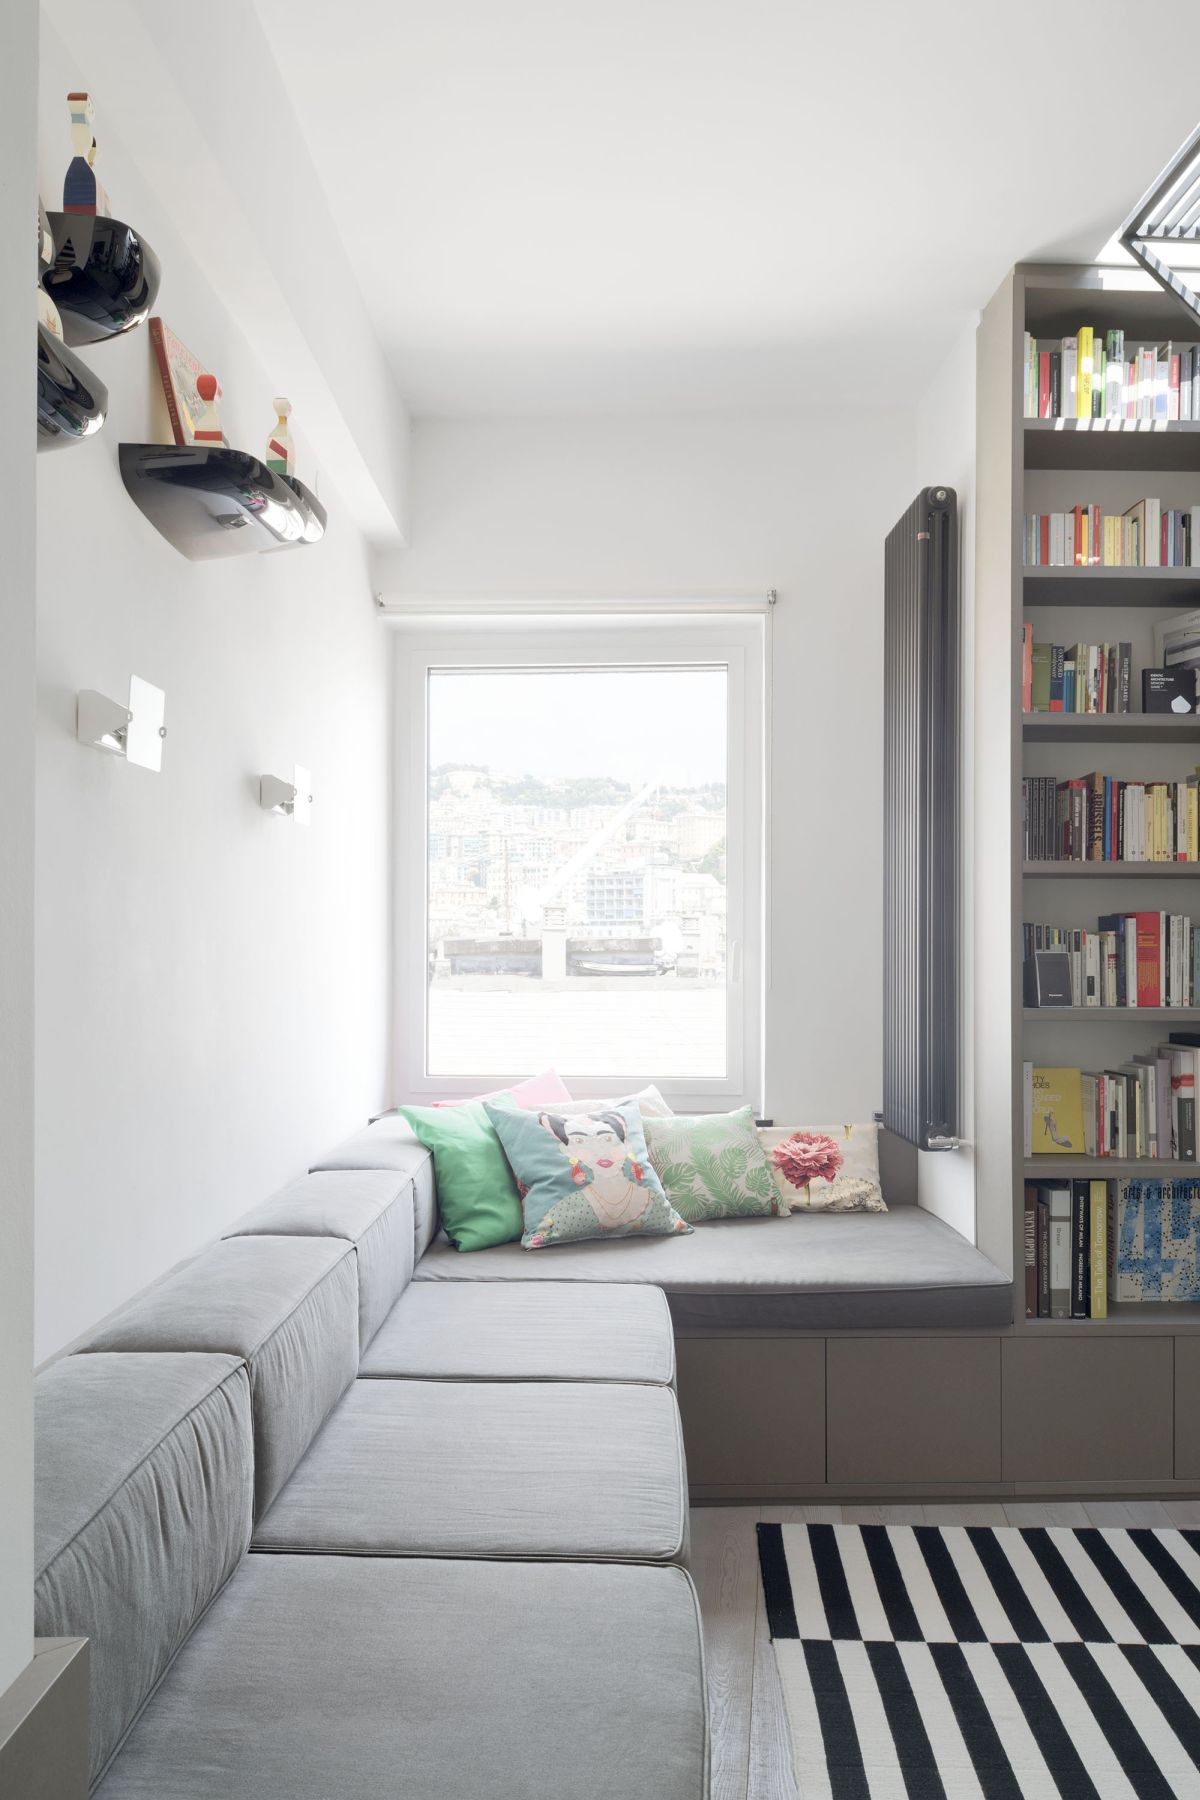 The unit extends to the side forming this low platform that serves as a bench for the sitting area